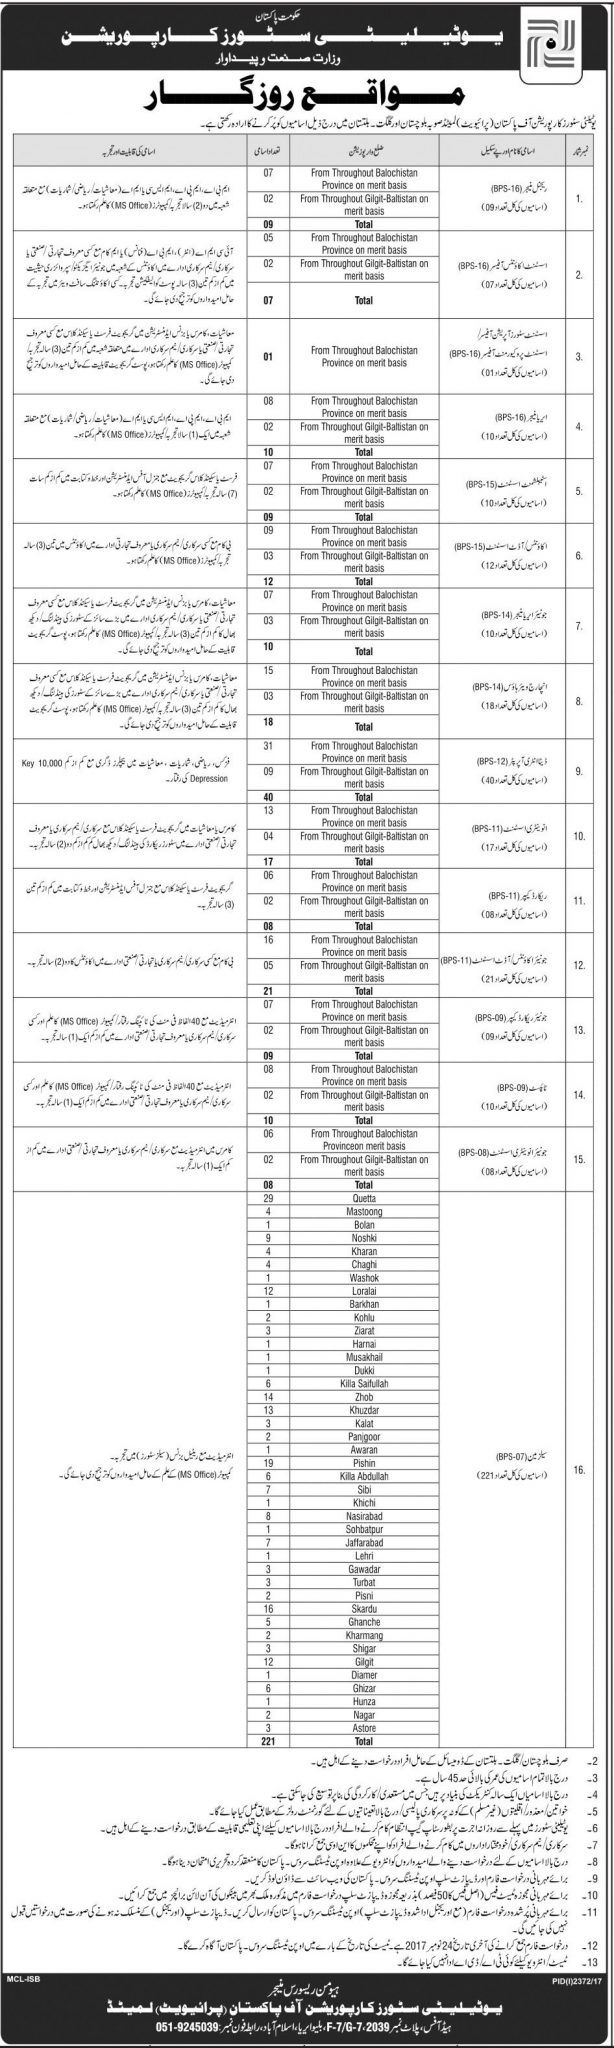 Government Utility Stores Corporation USC Jobs 2017 For Salesman, DEO And Typists http://www.jobsfanda.com/usc-jobs-2017-for-salesman-deo-and-typists/